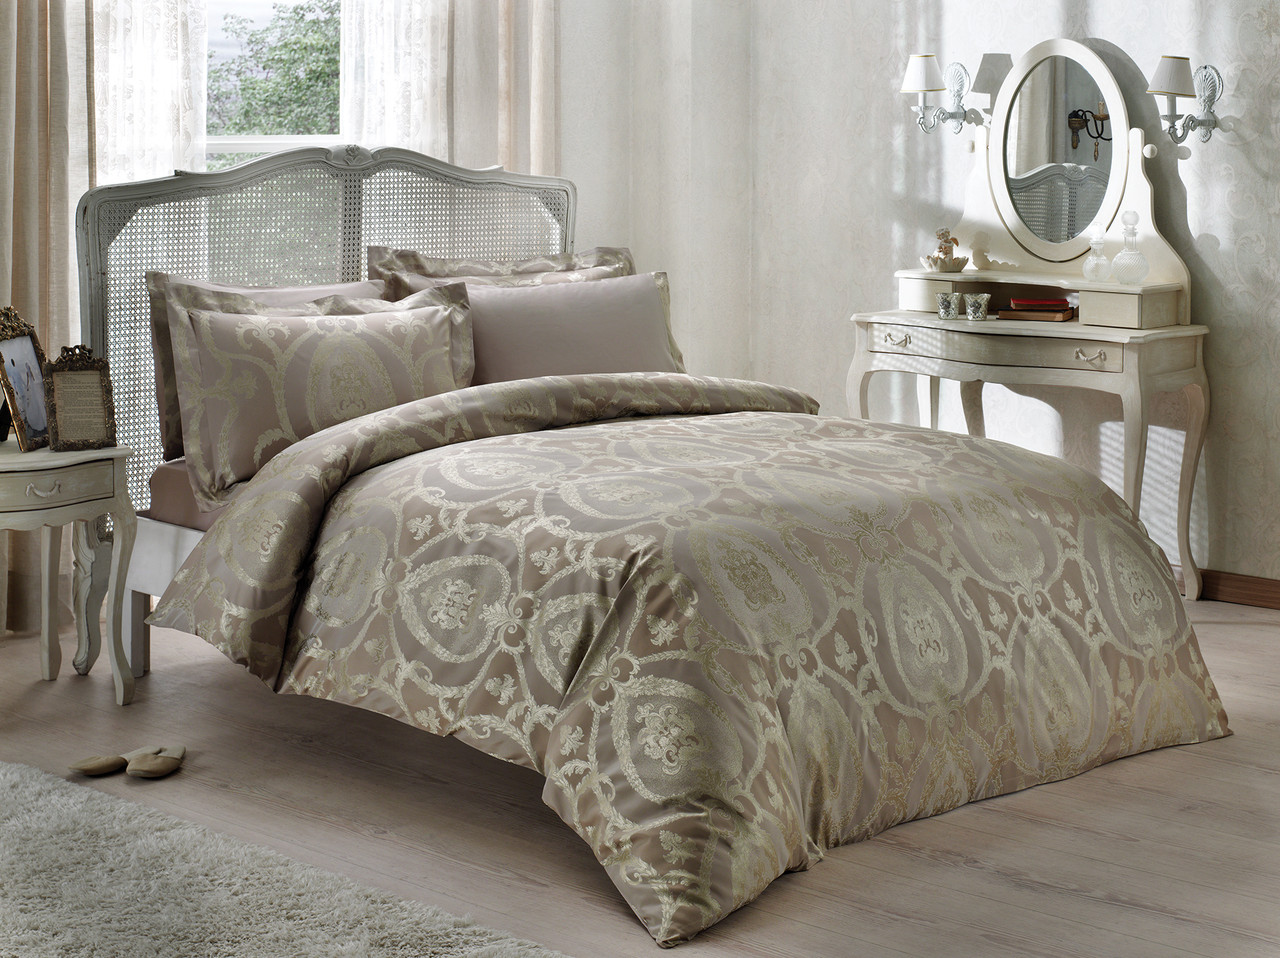 Tivolyo home КПБ NOBILE JACQUARD  евро т.белый